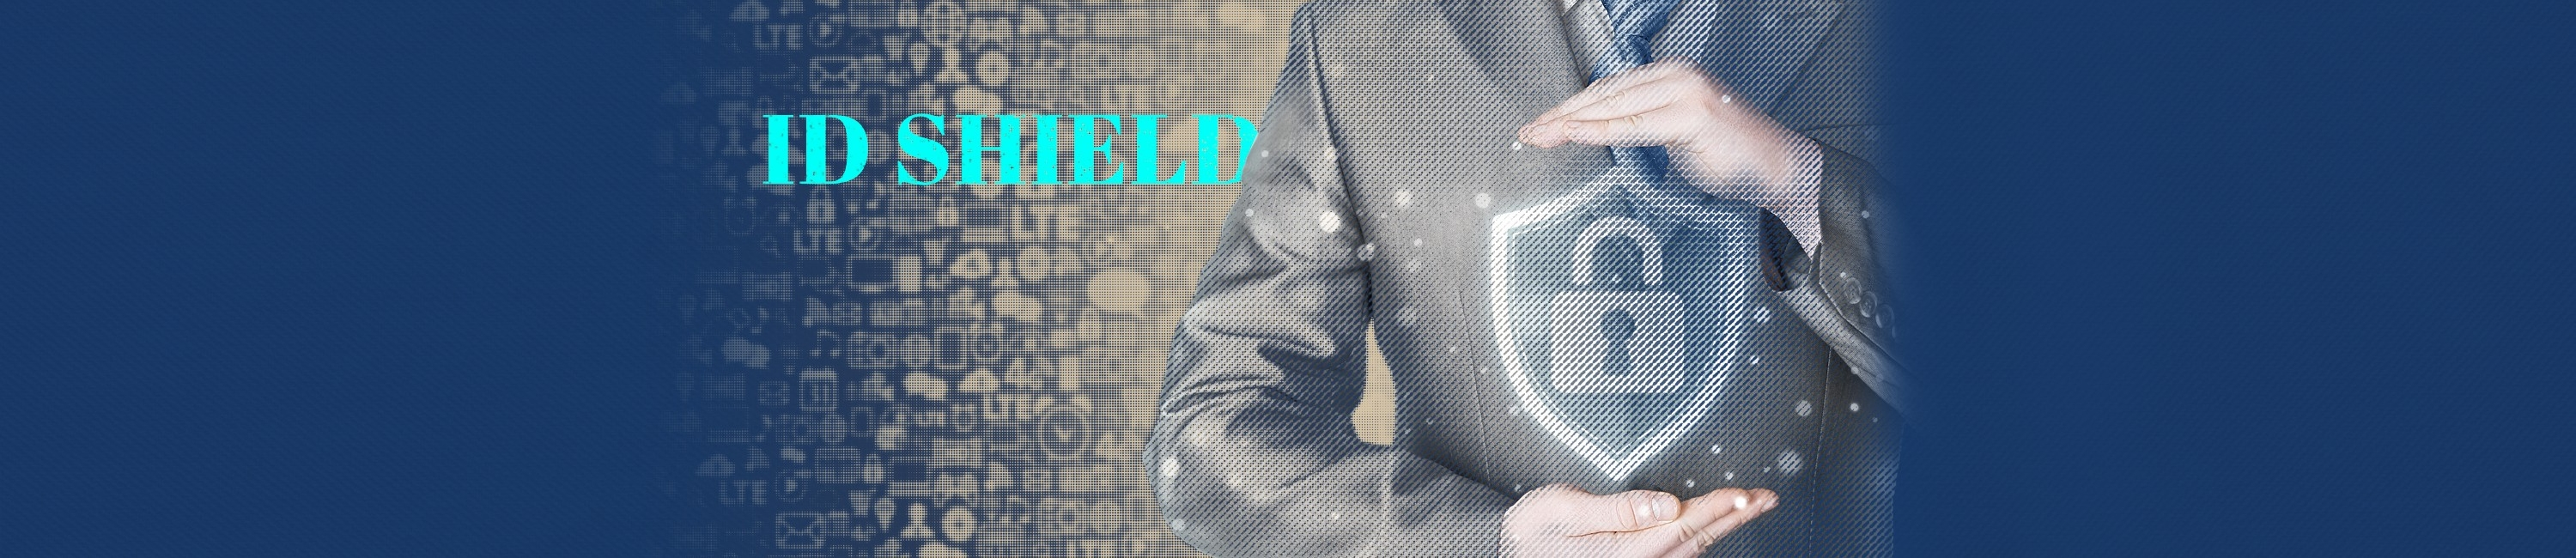 man in a suit placing his hands around an icon pad lock. the words on the image say ID Shield